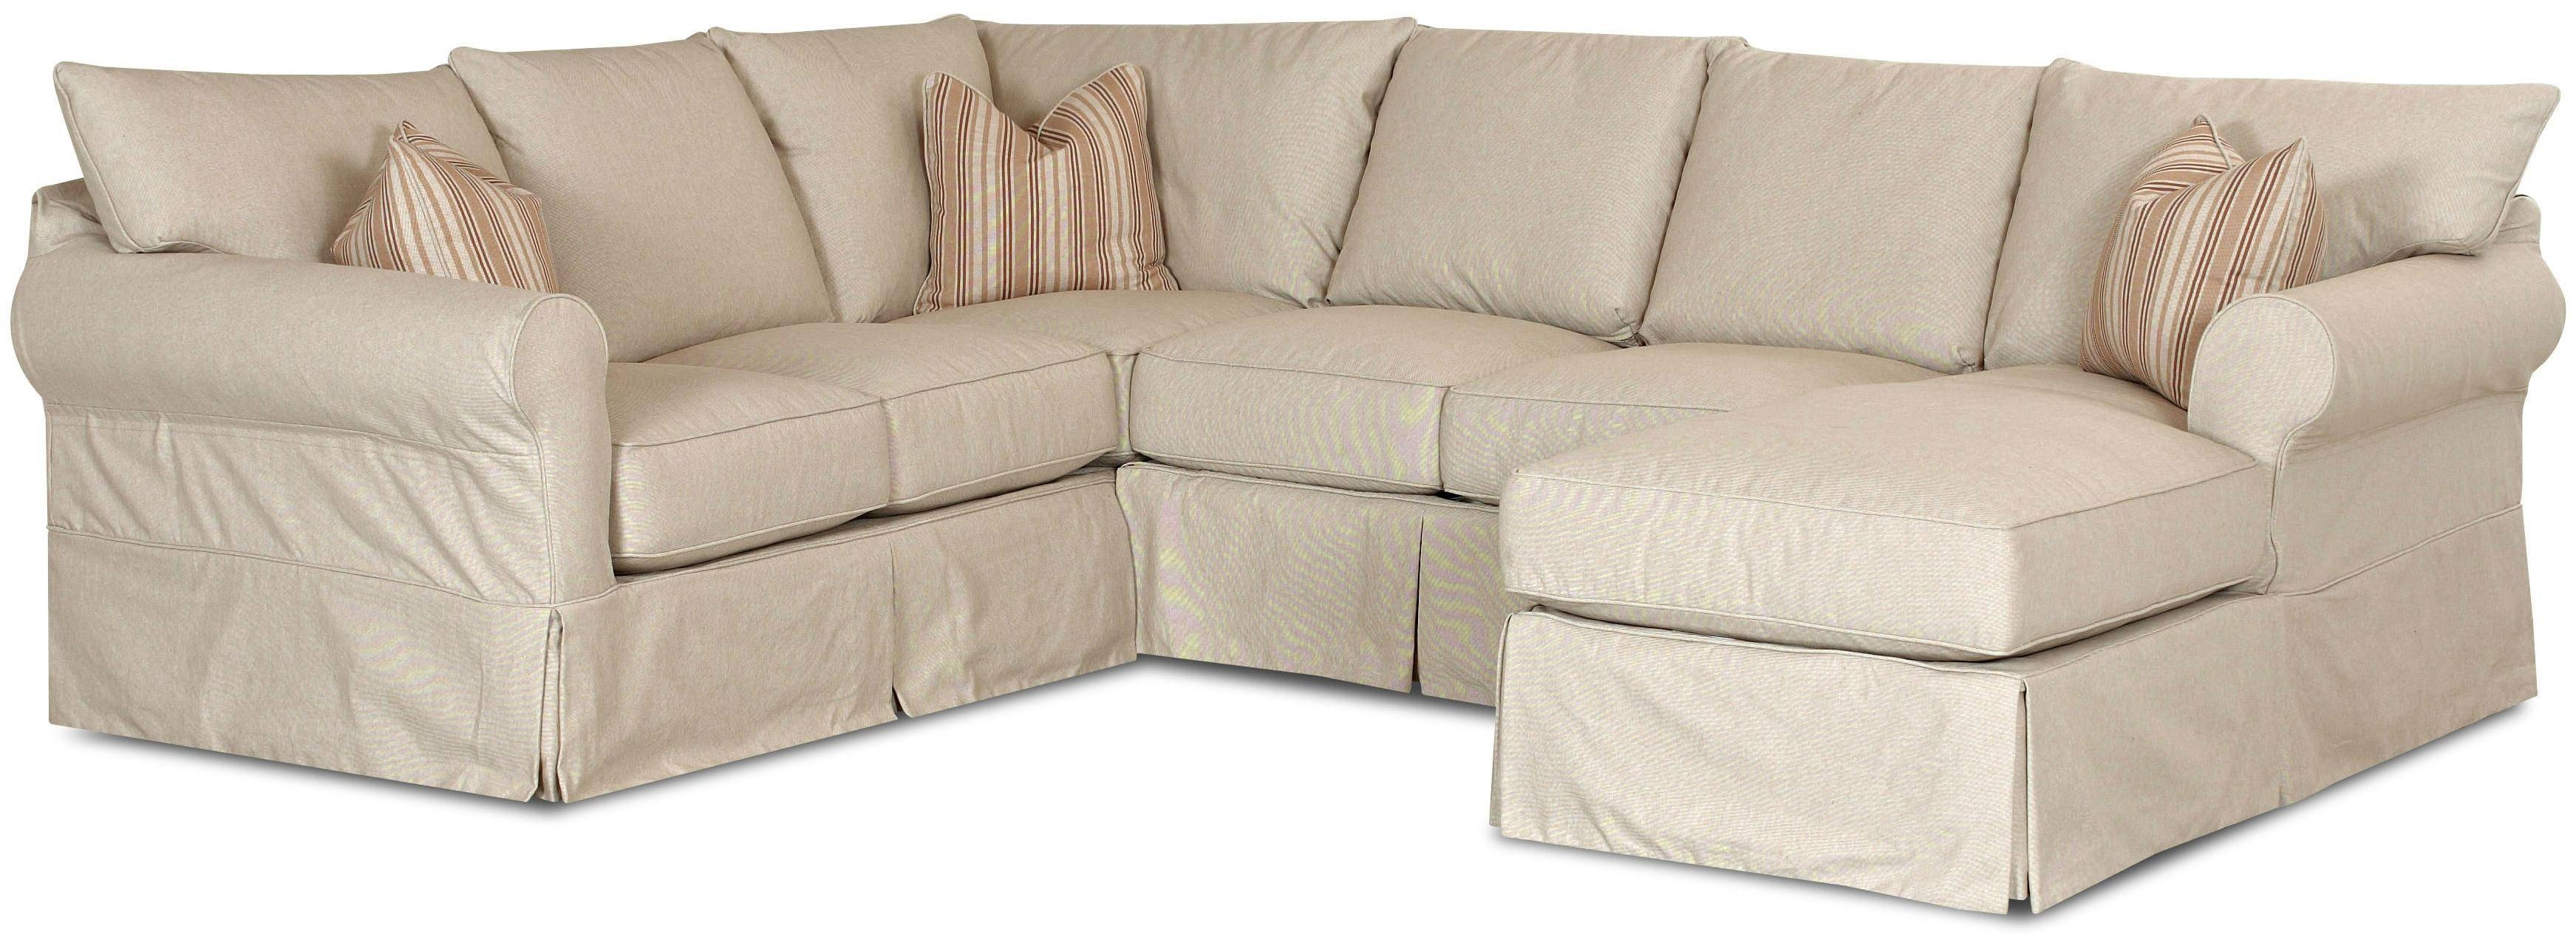 Furniture: Slip Covers For Sectional Couches | Couch Slip Covers With Sofas Cover For Sectional Sofas (View 6 of 15)